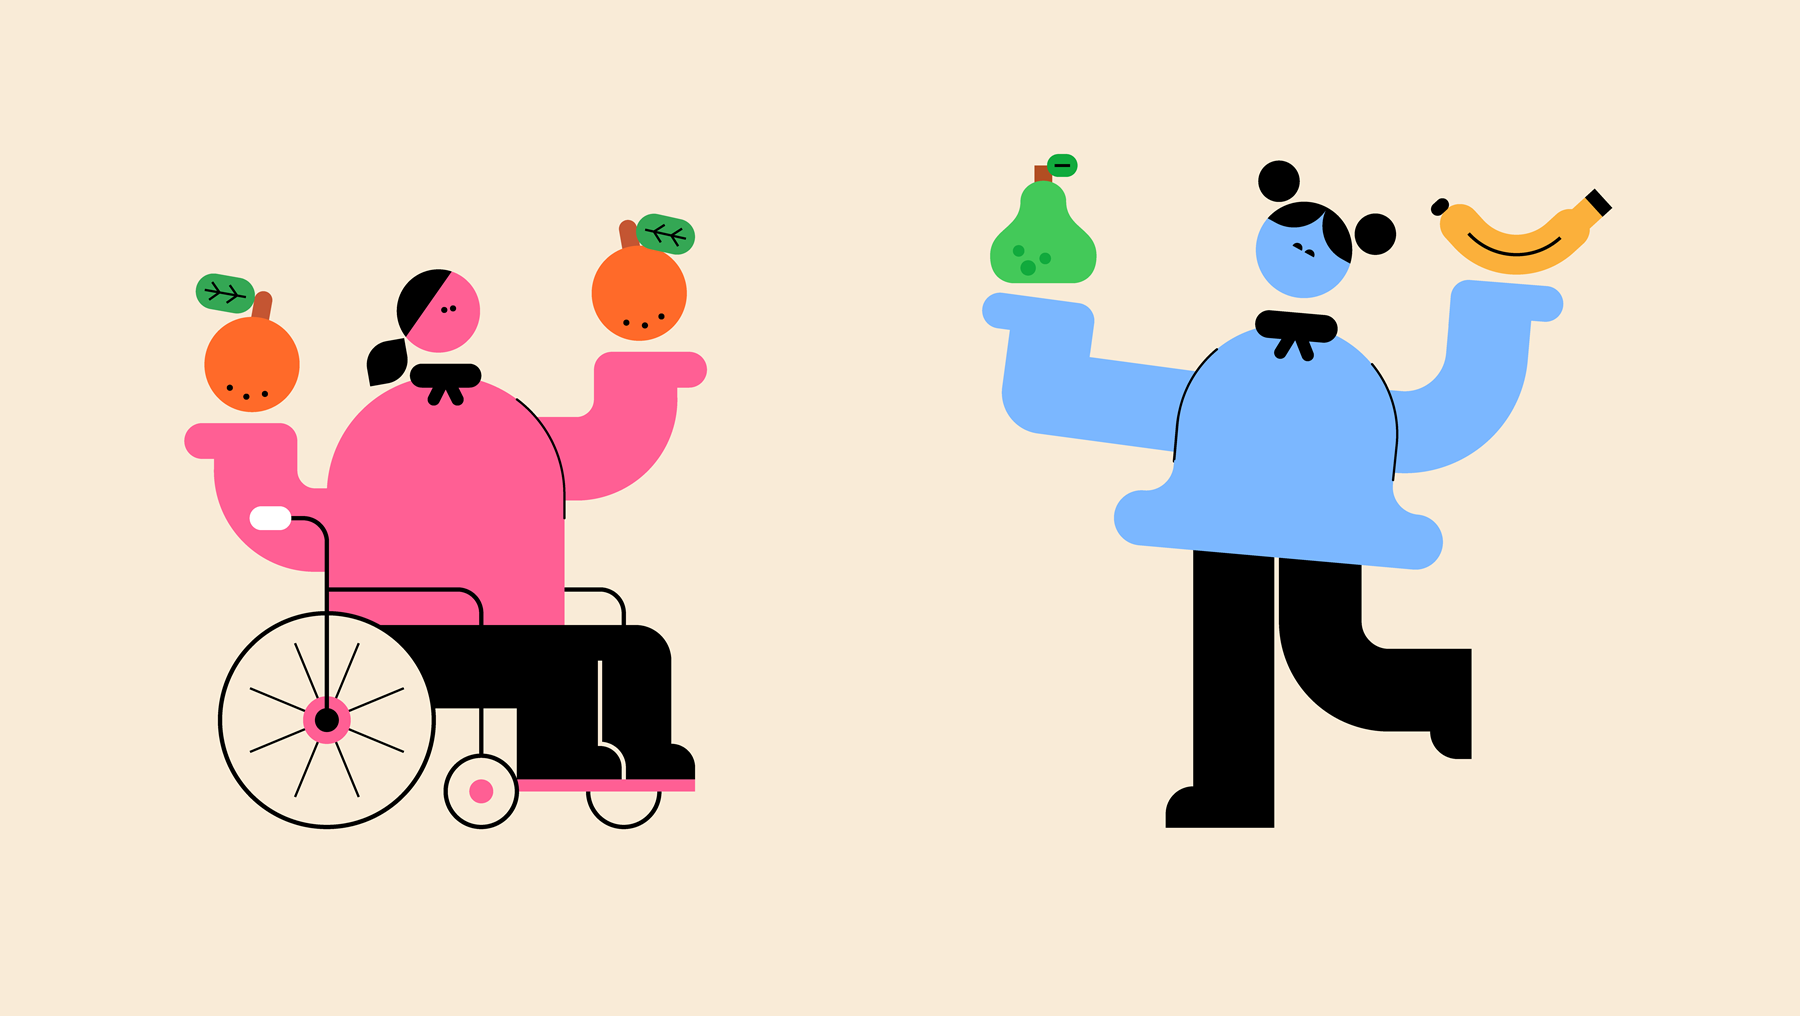 An illustration of two people holding an different fruits in each hand.